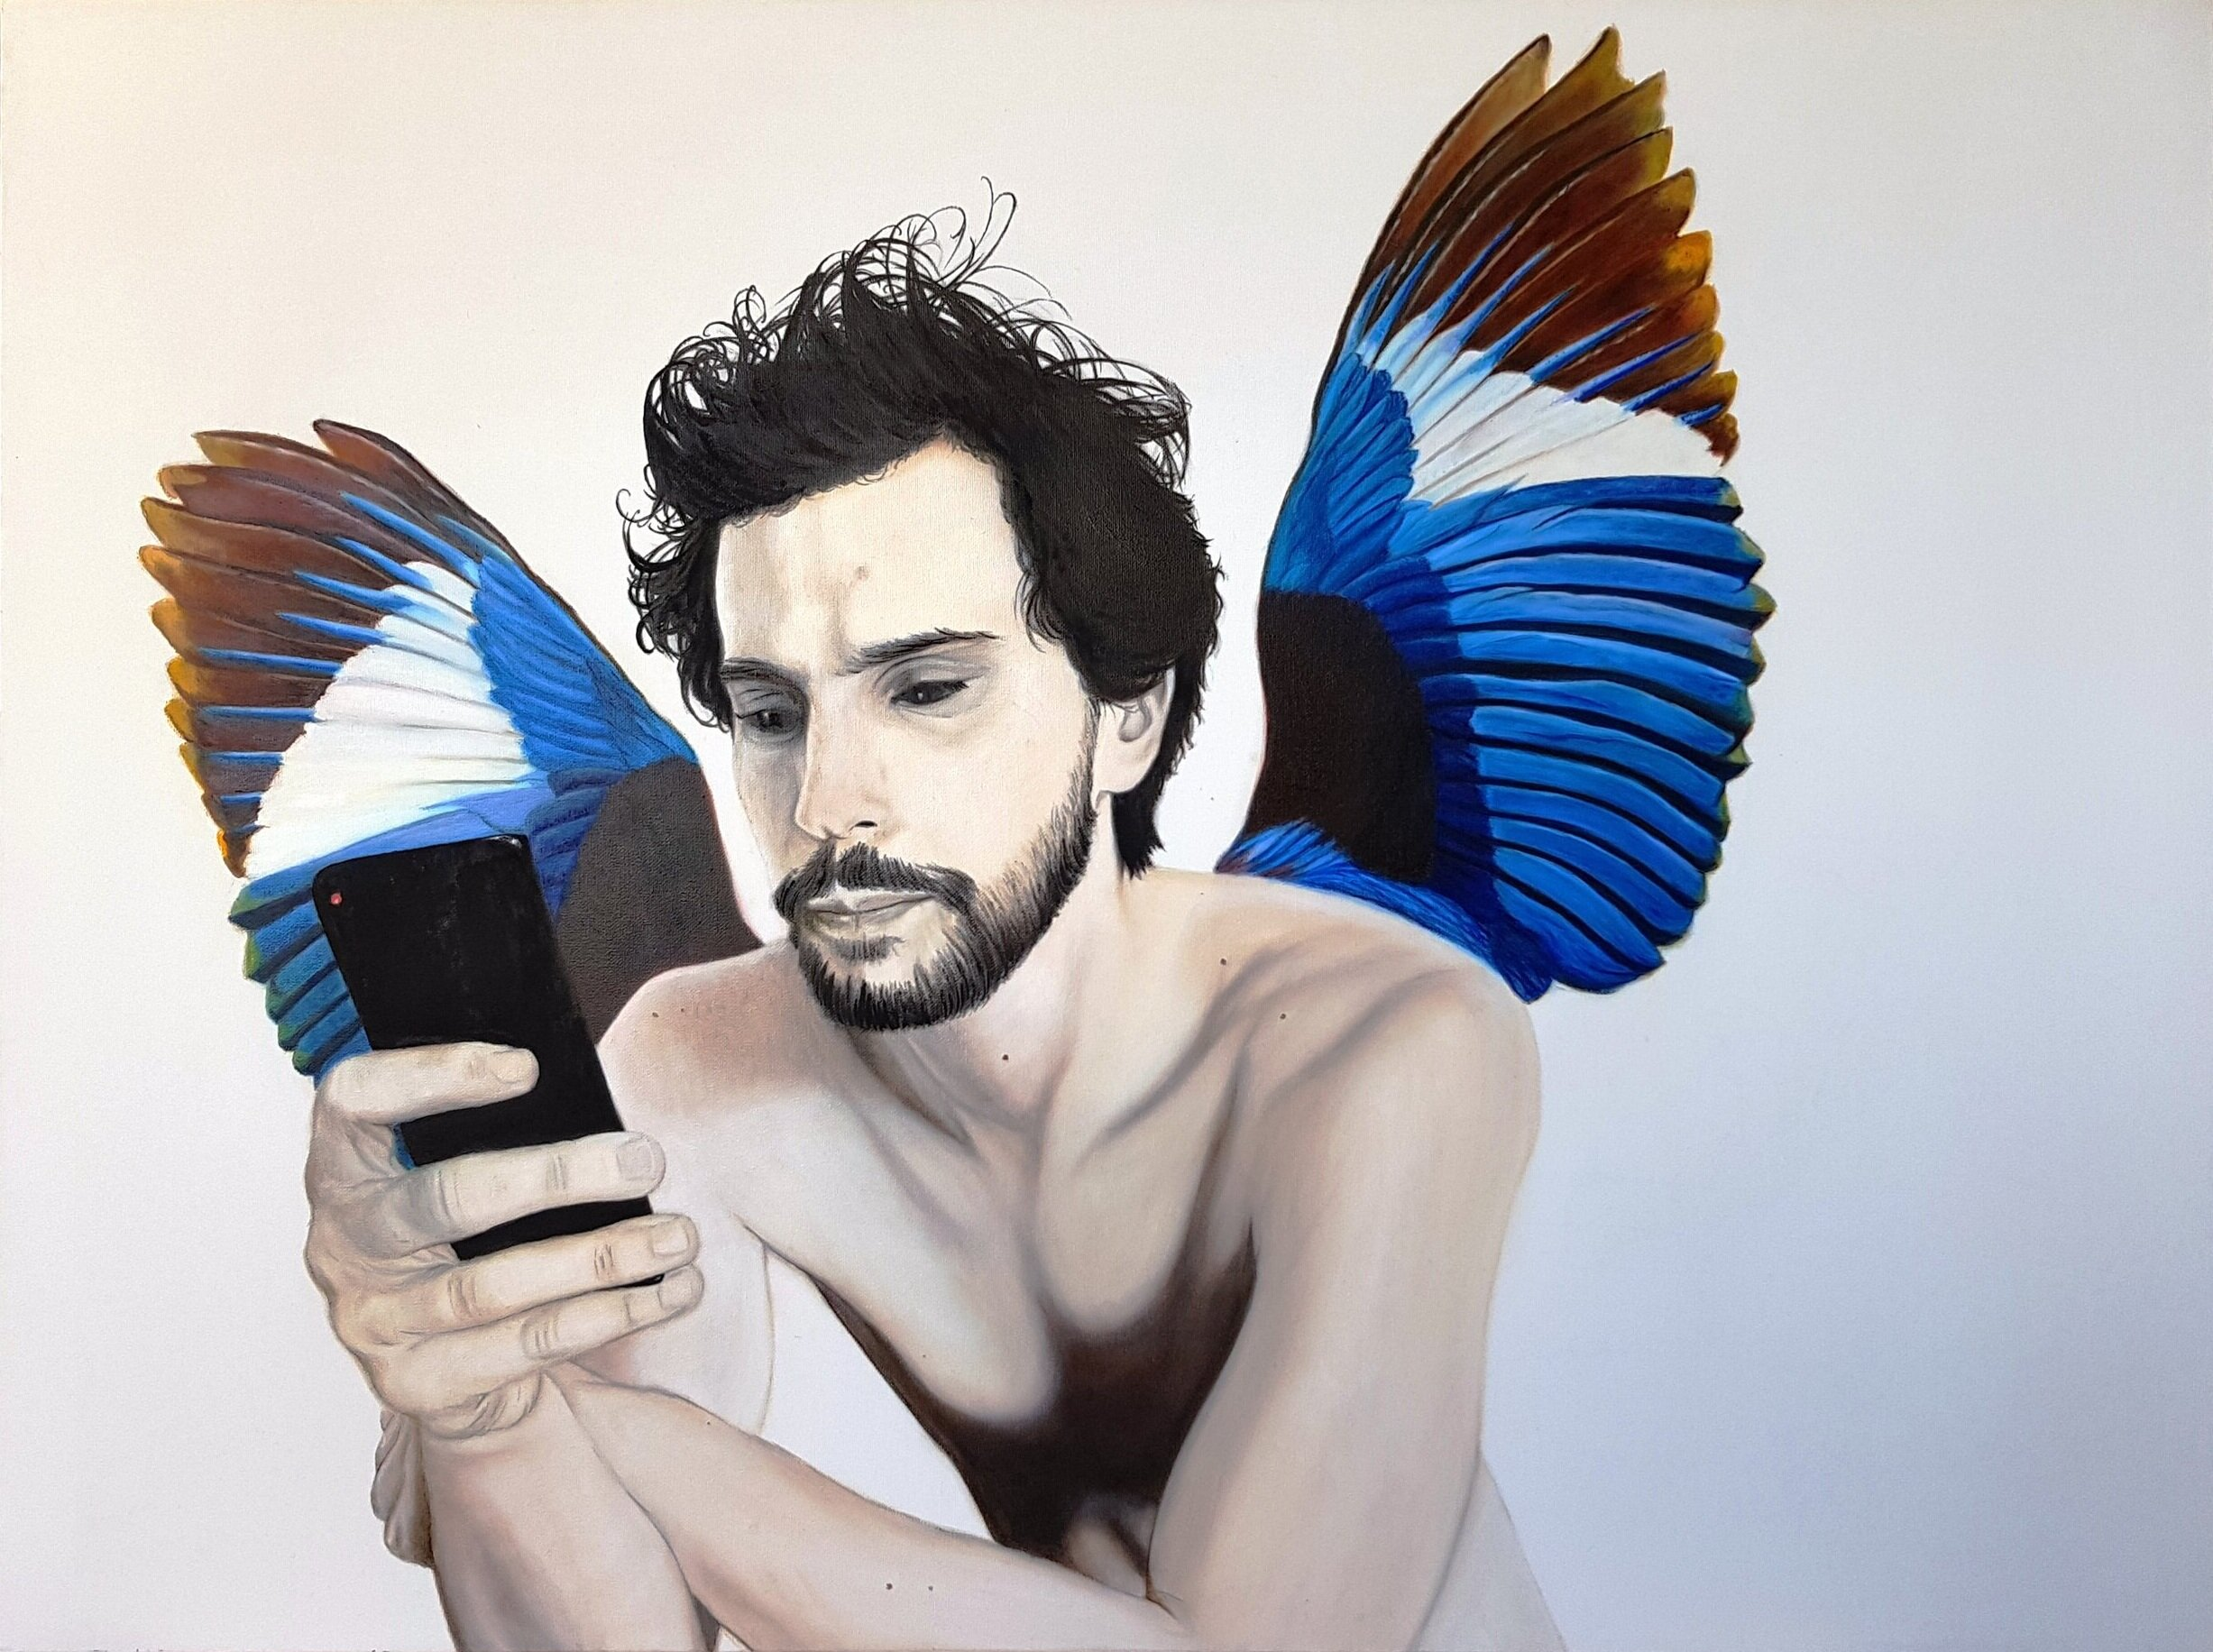 Artist: Rebecca Taylor  Title: Man with Wings  Size: 76 x 101 cm  Medium: Oil on canvas